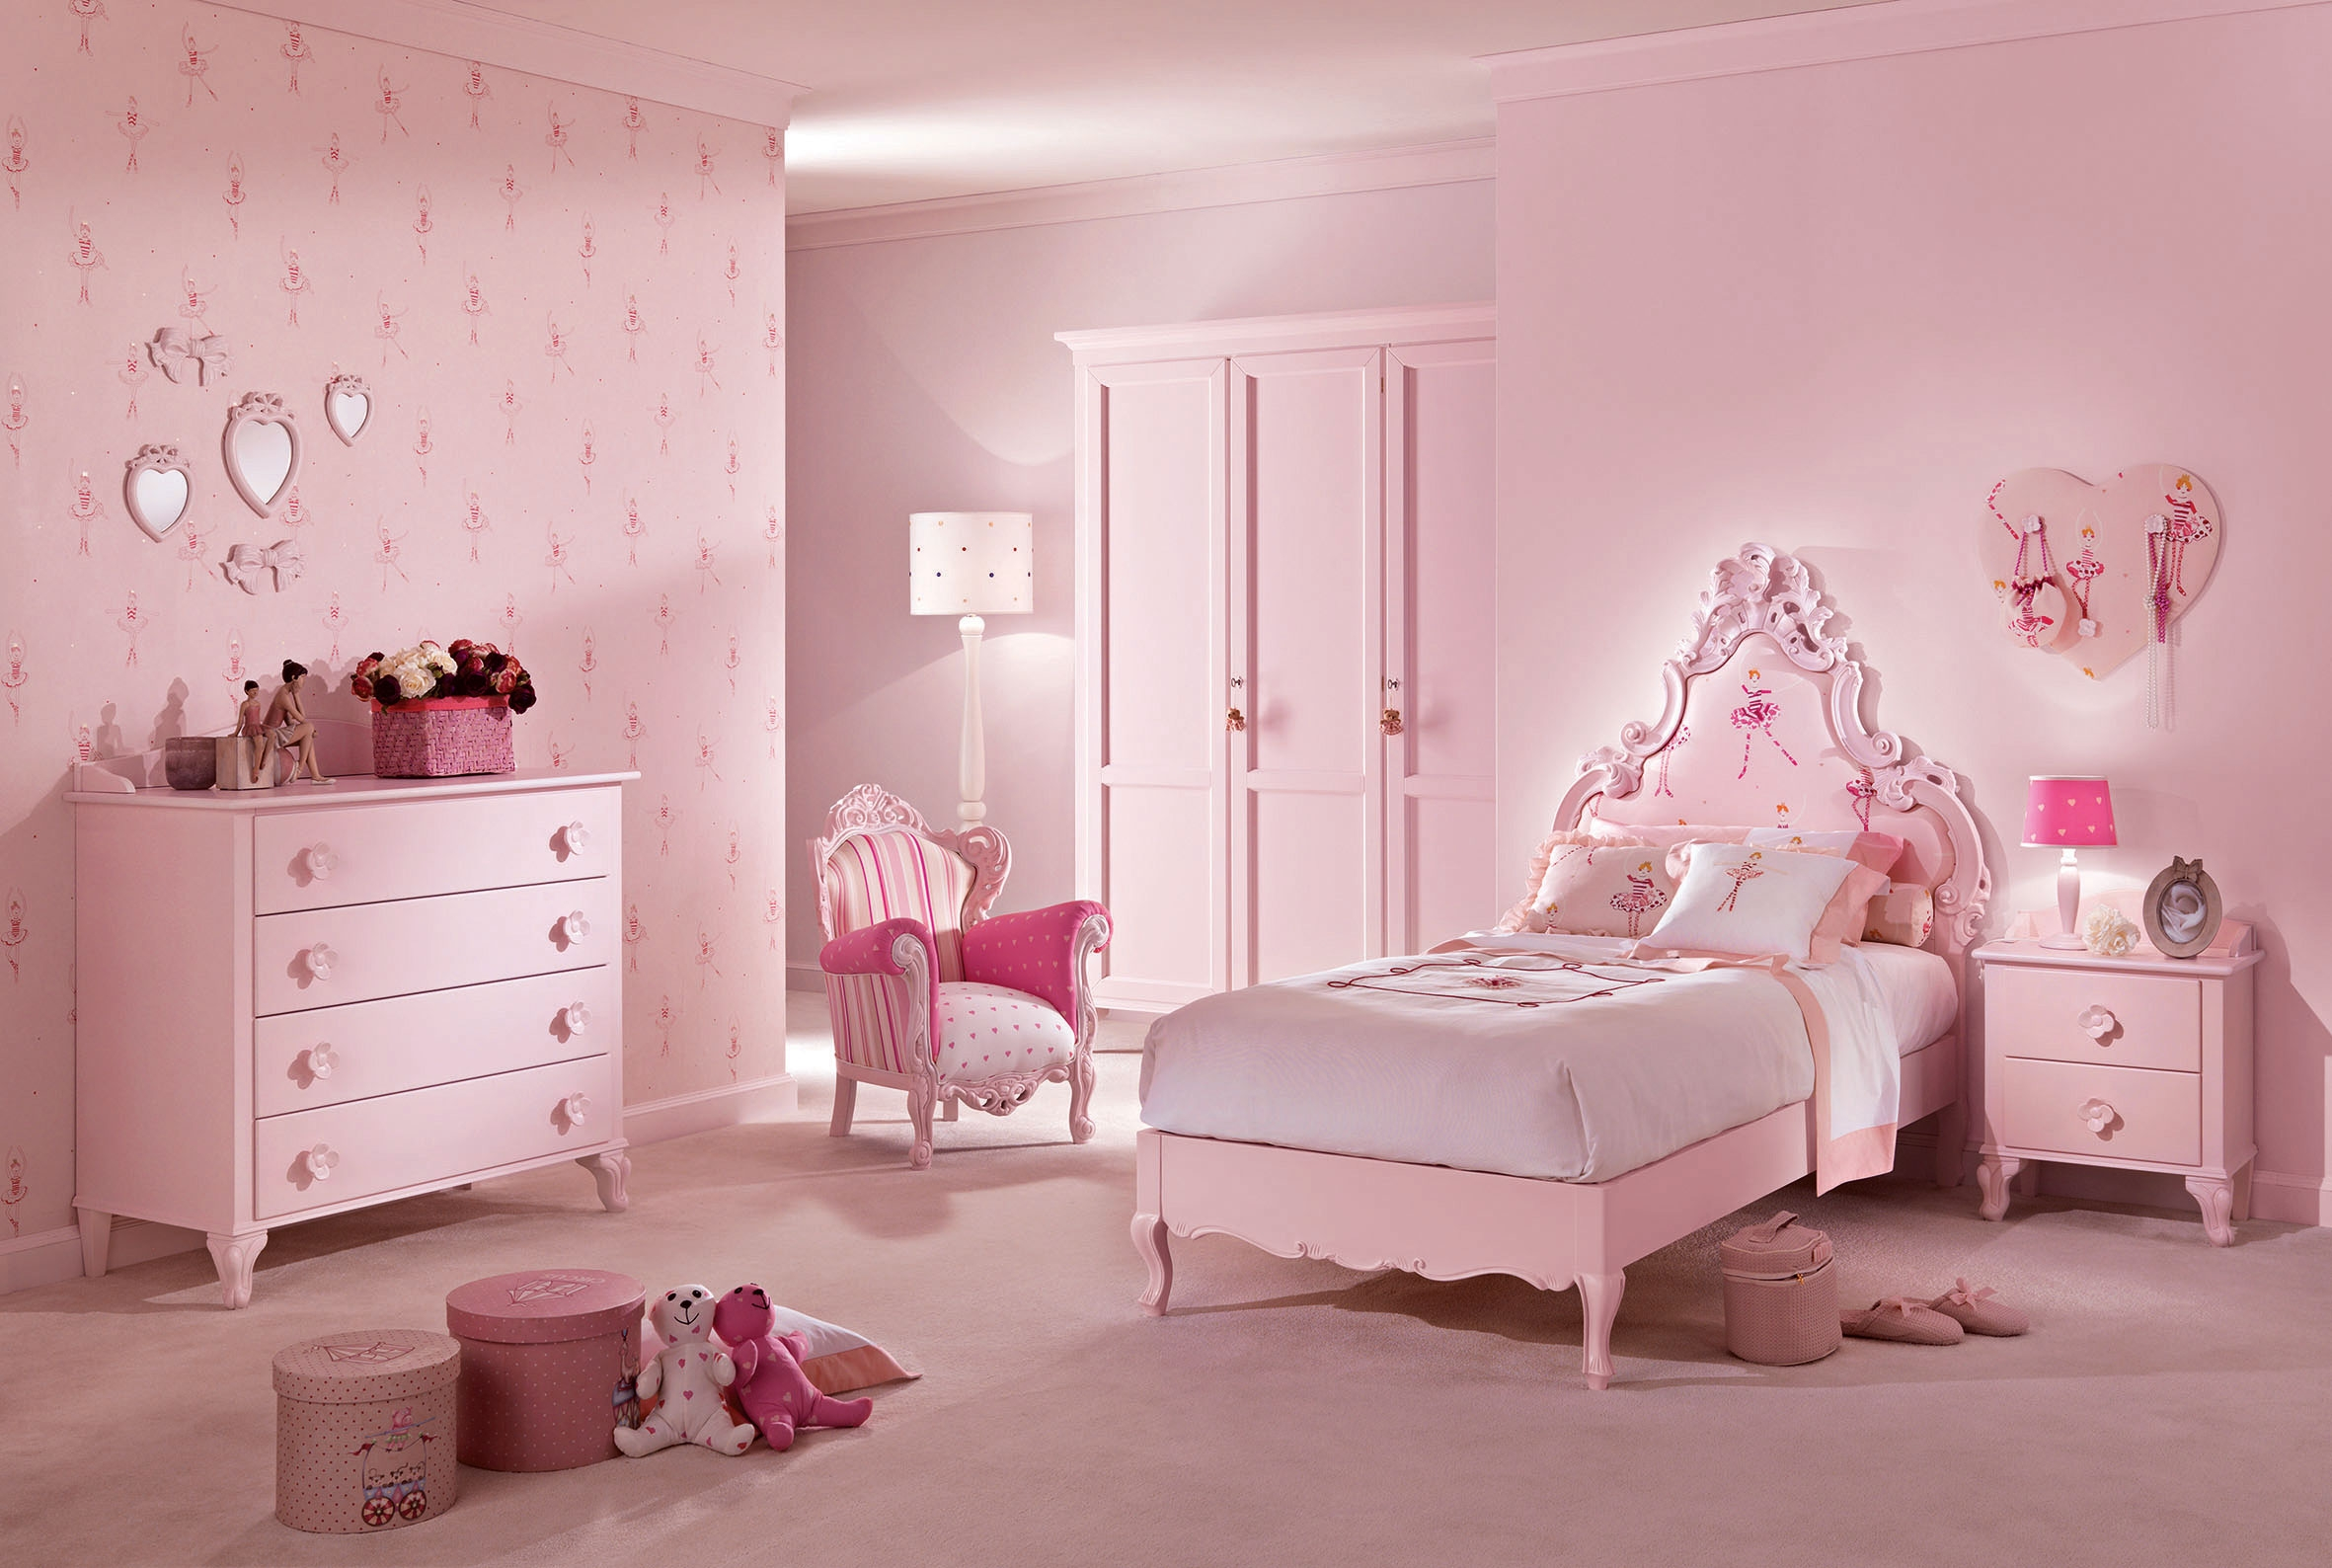 Lit princesse mod le c cile rose pastel piermaria so nuit for Modele chambre rose